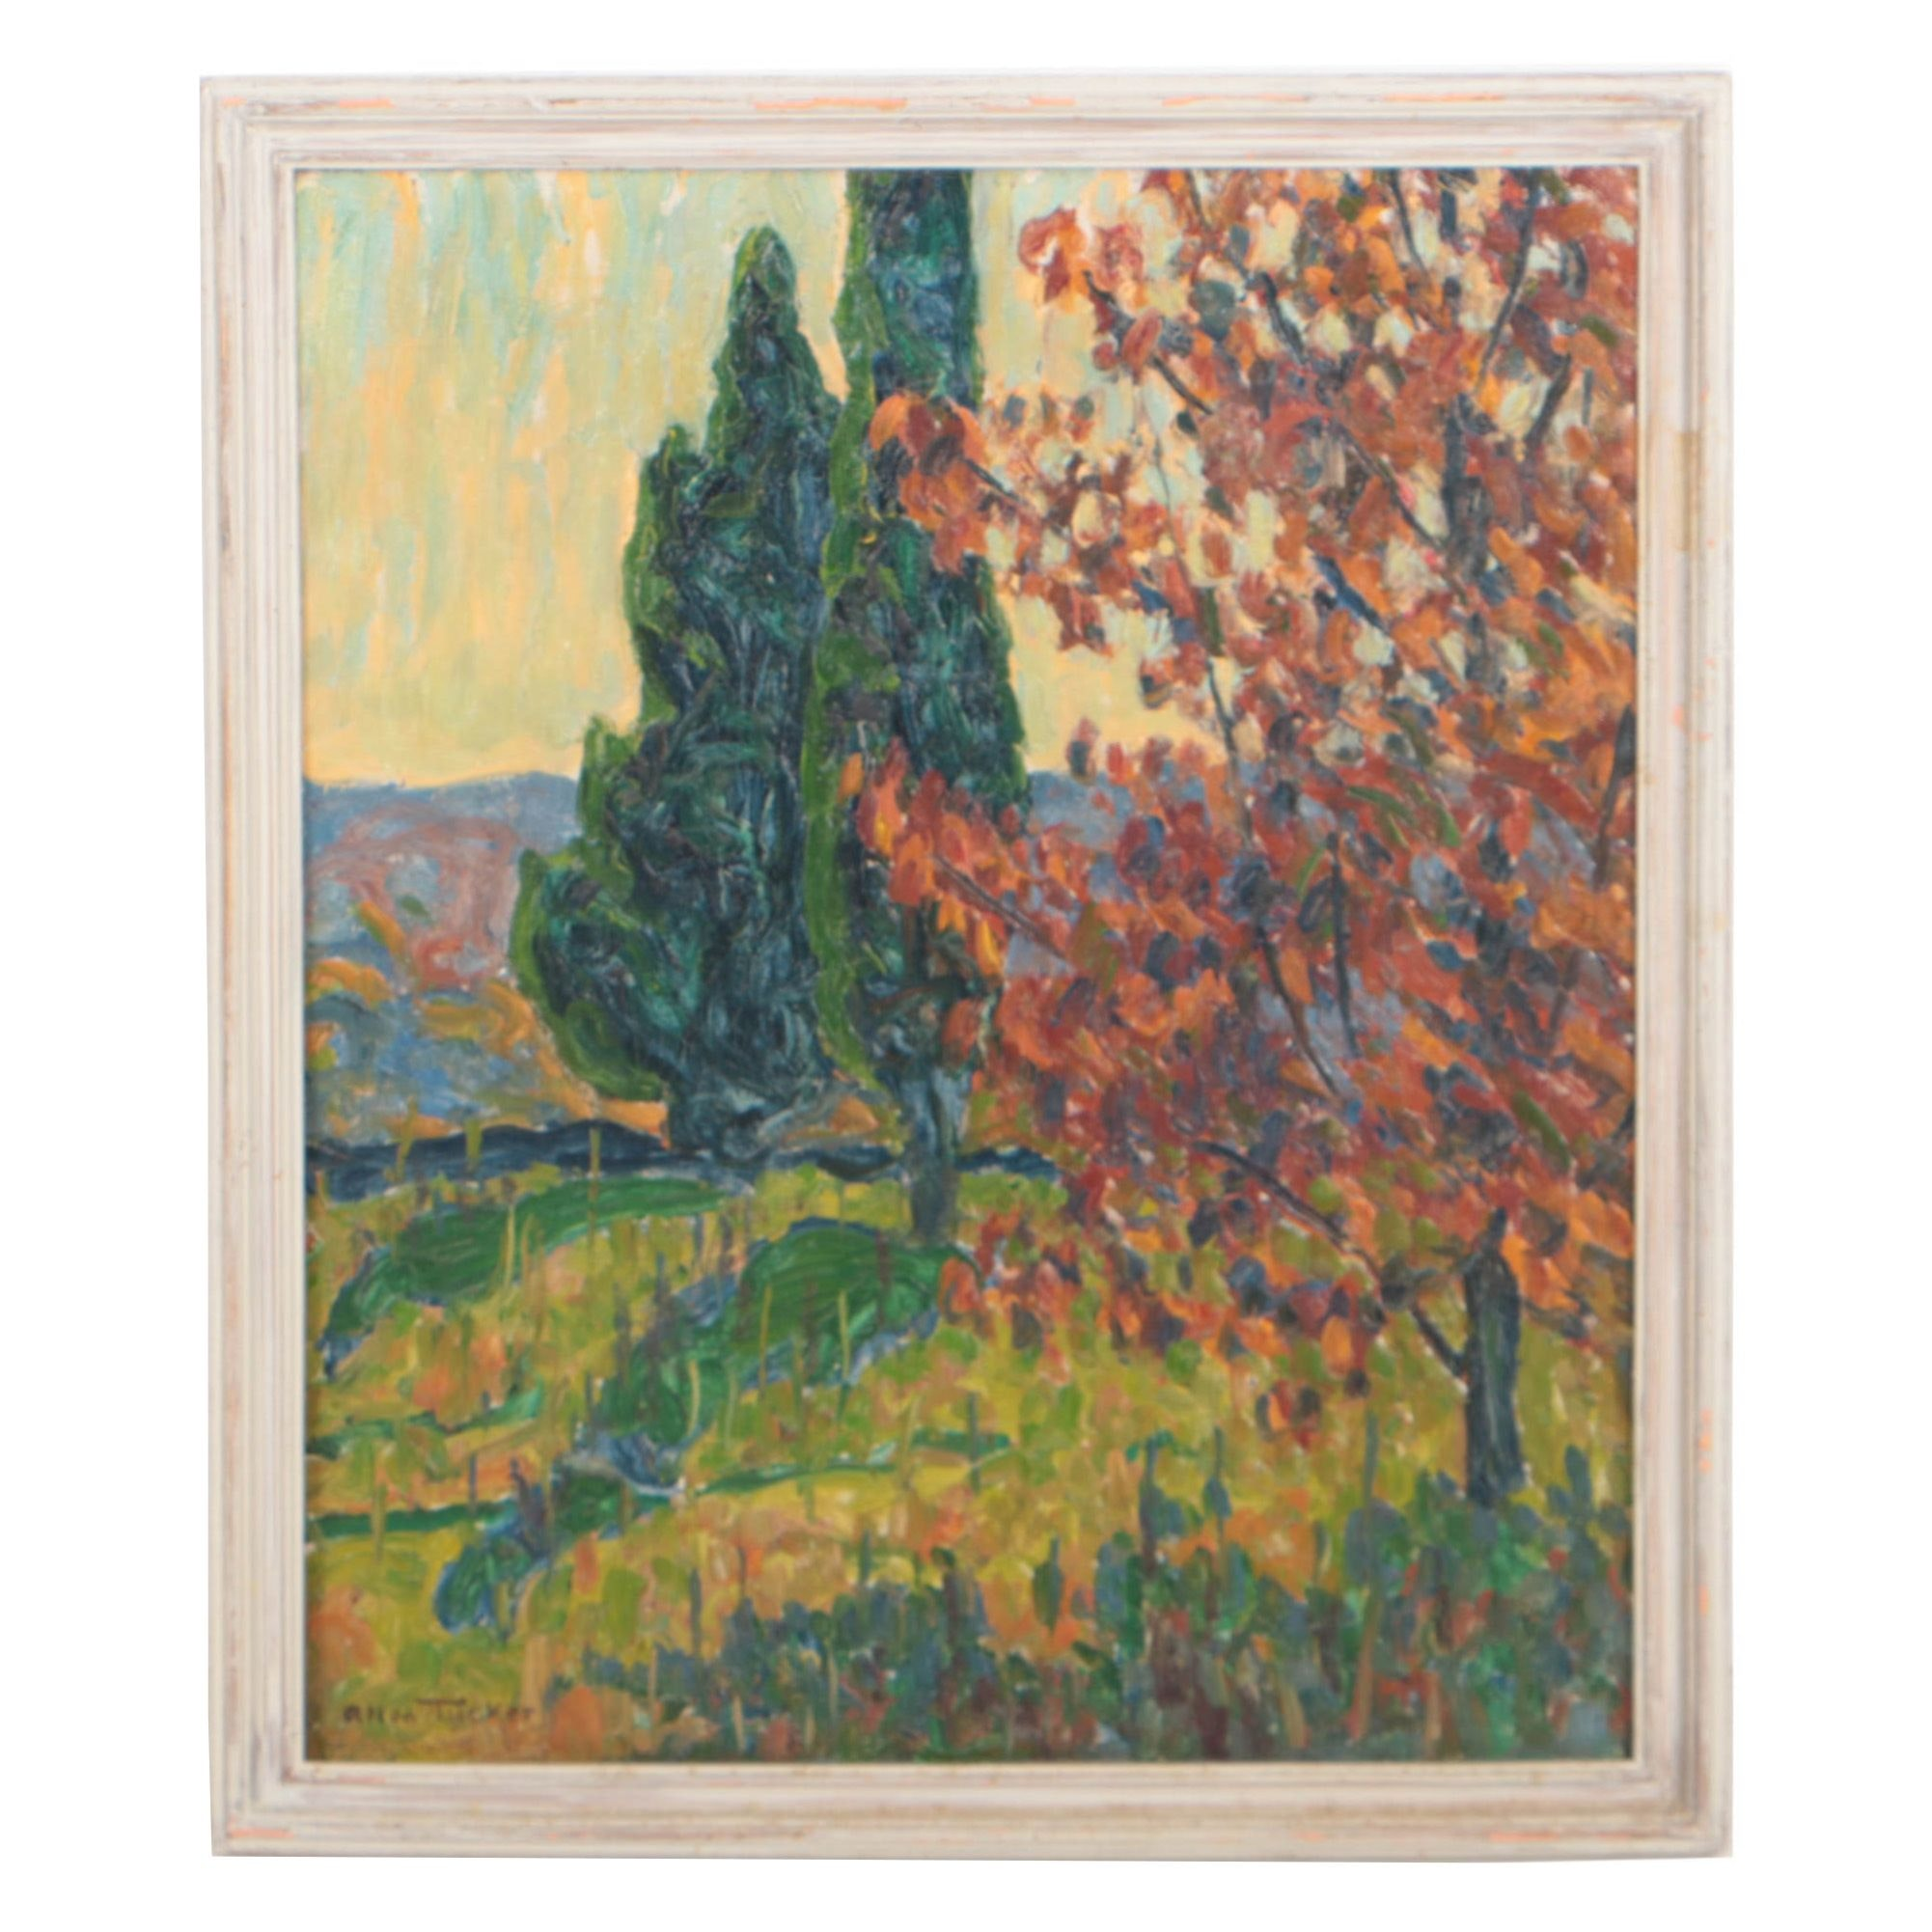 Allen Tucker Early 20th Century Autumnal Landscape Oil Painting